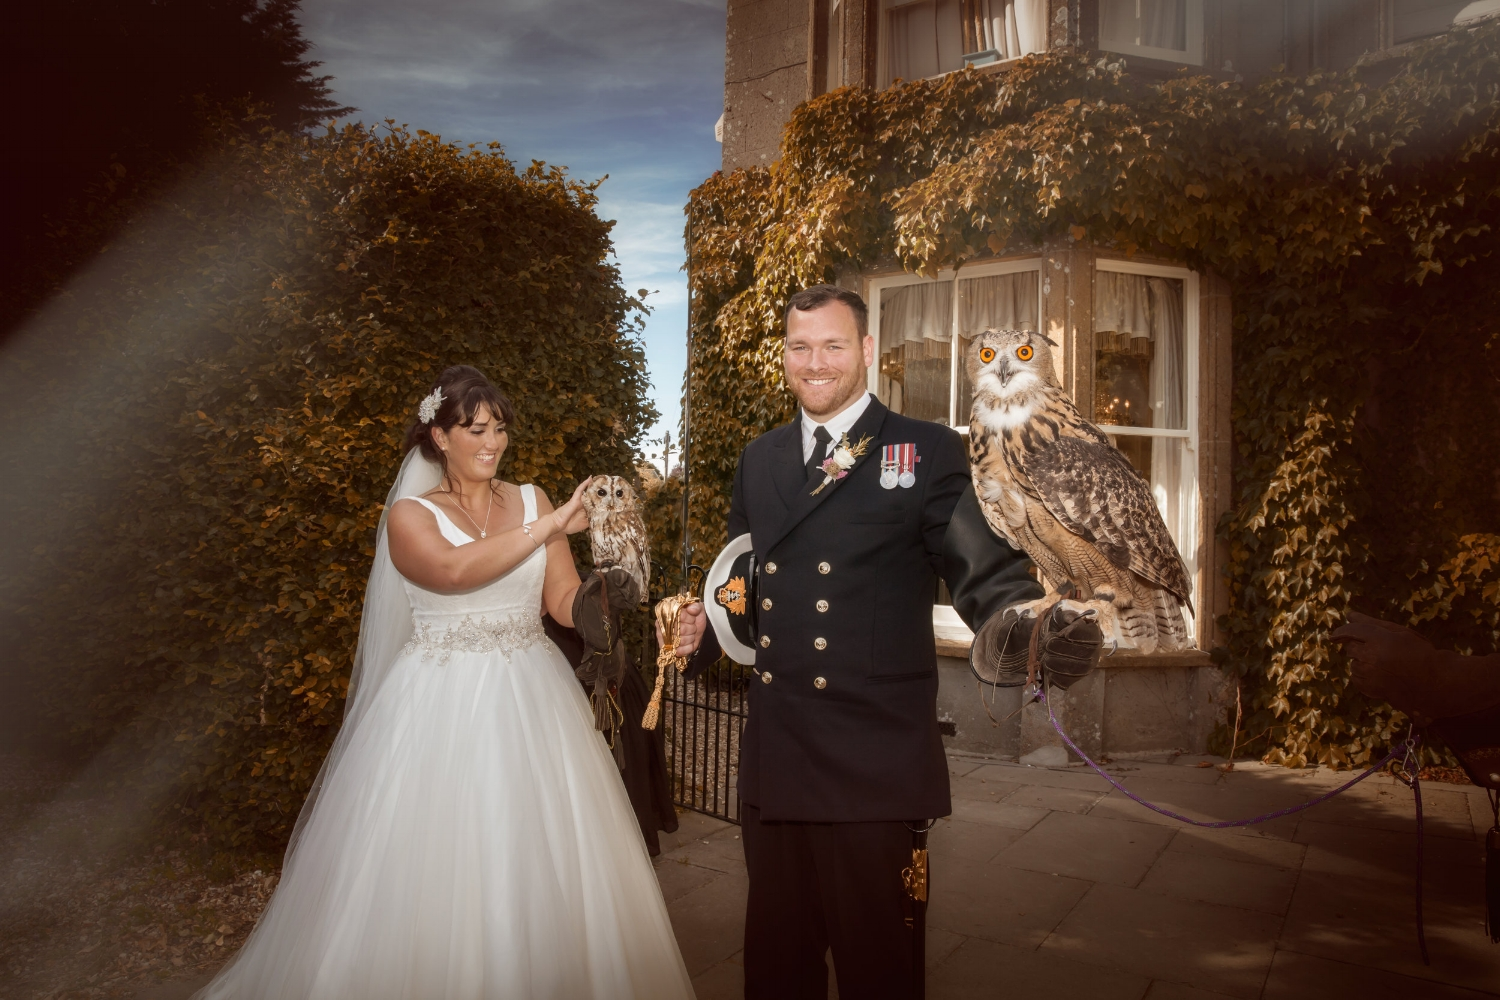 Wayne Hudson, Imagery by hudson, lucria creative, photography, photographer, wedding, bride, groom, Coventry, Warwickshire. how to choose the right wedding photographer